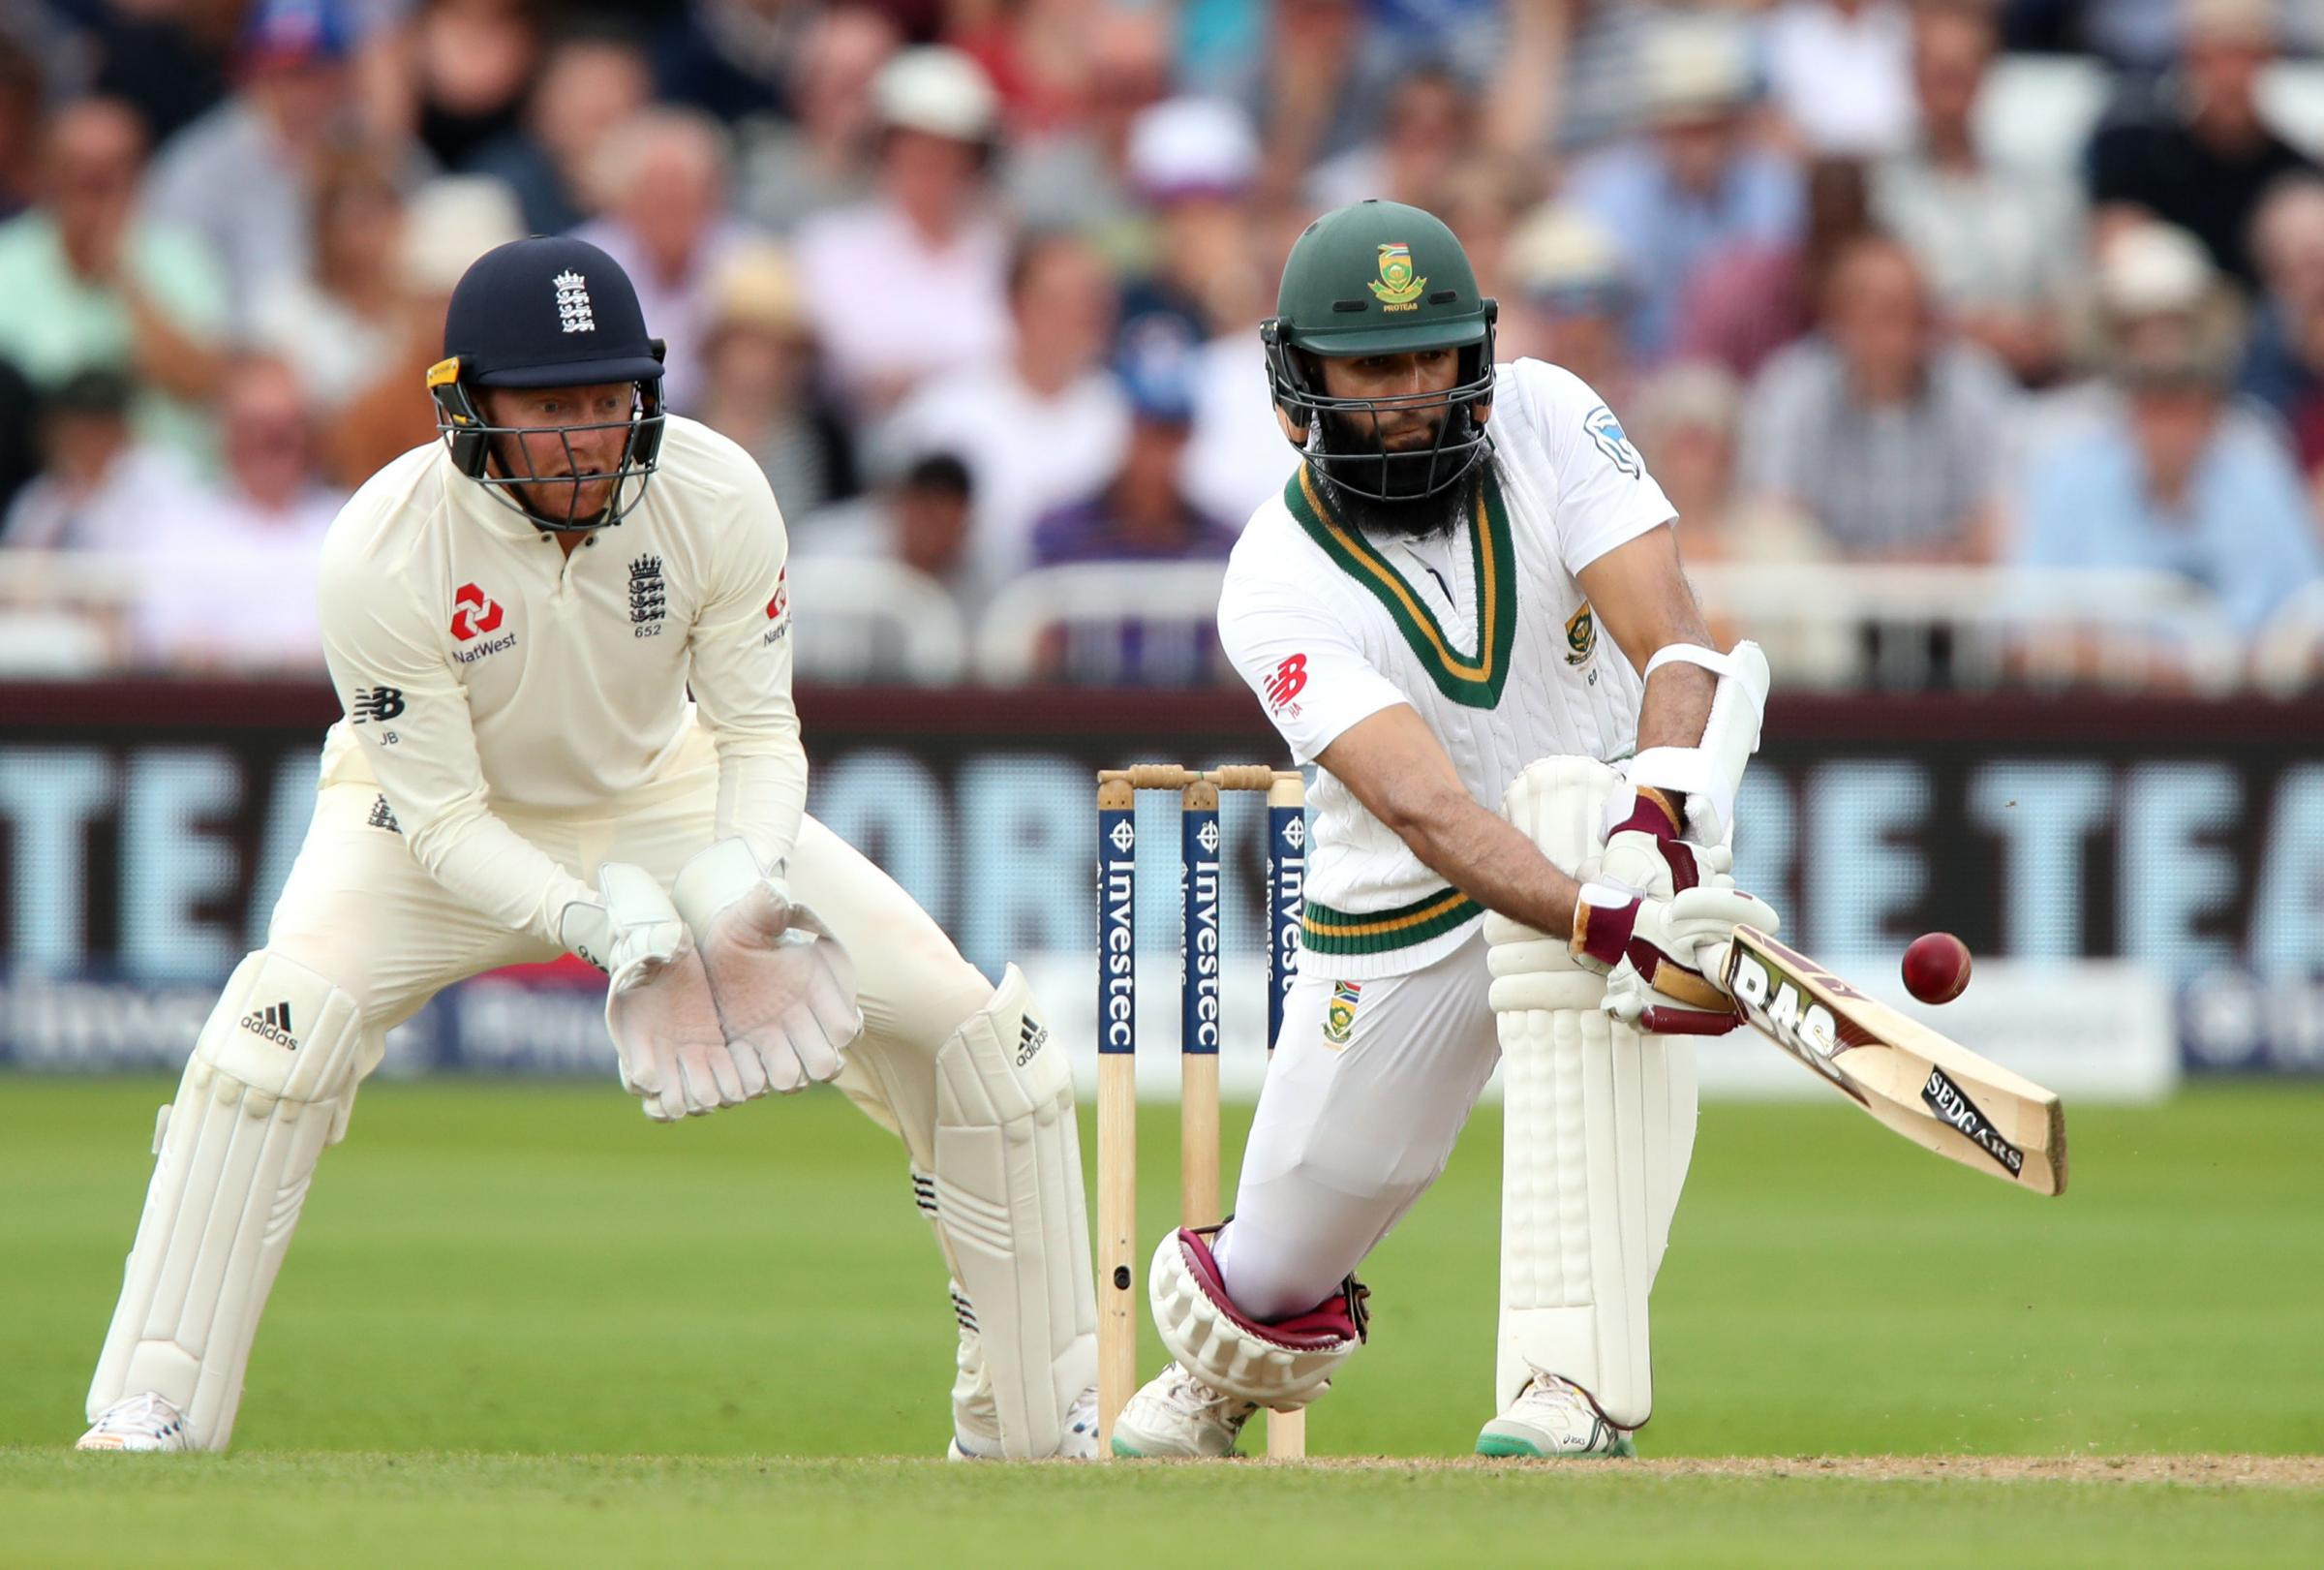 Hashim Amla in action for South Africa against England